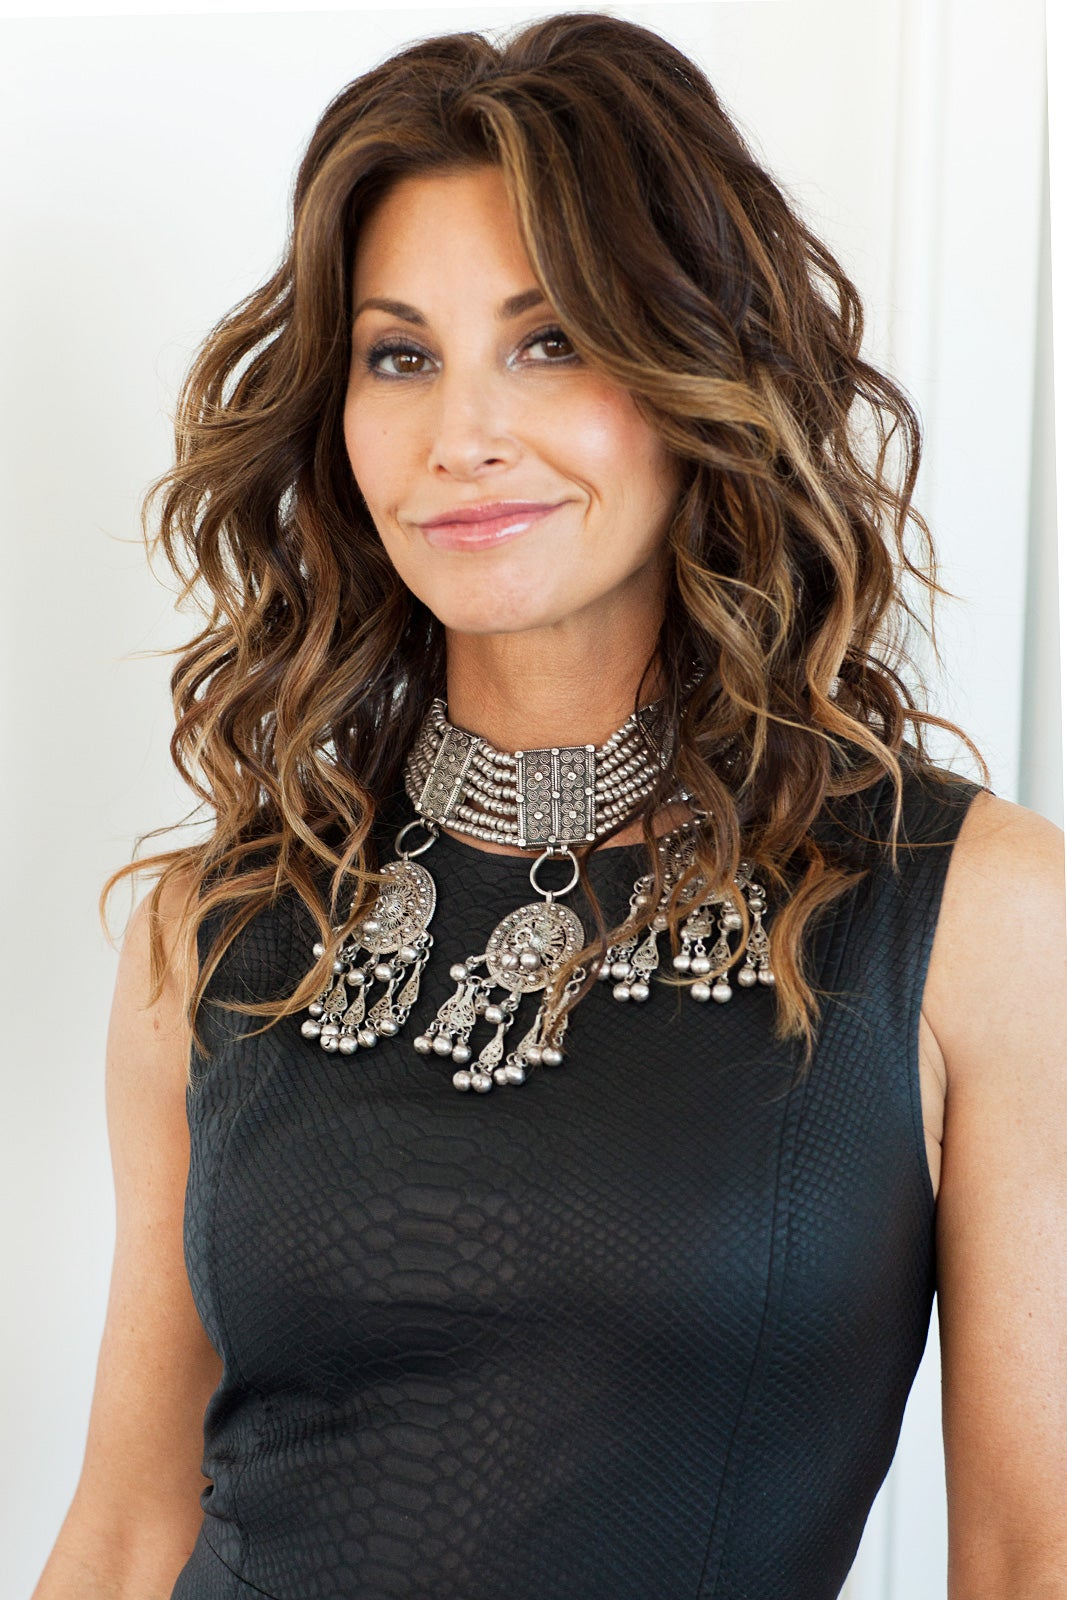 Gina Gershon Interview, Pictures - House Of Versace